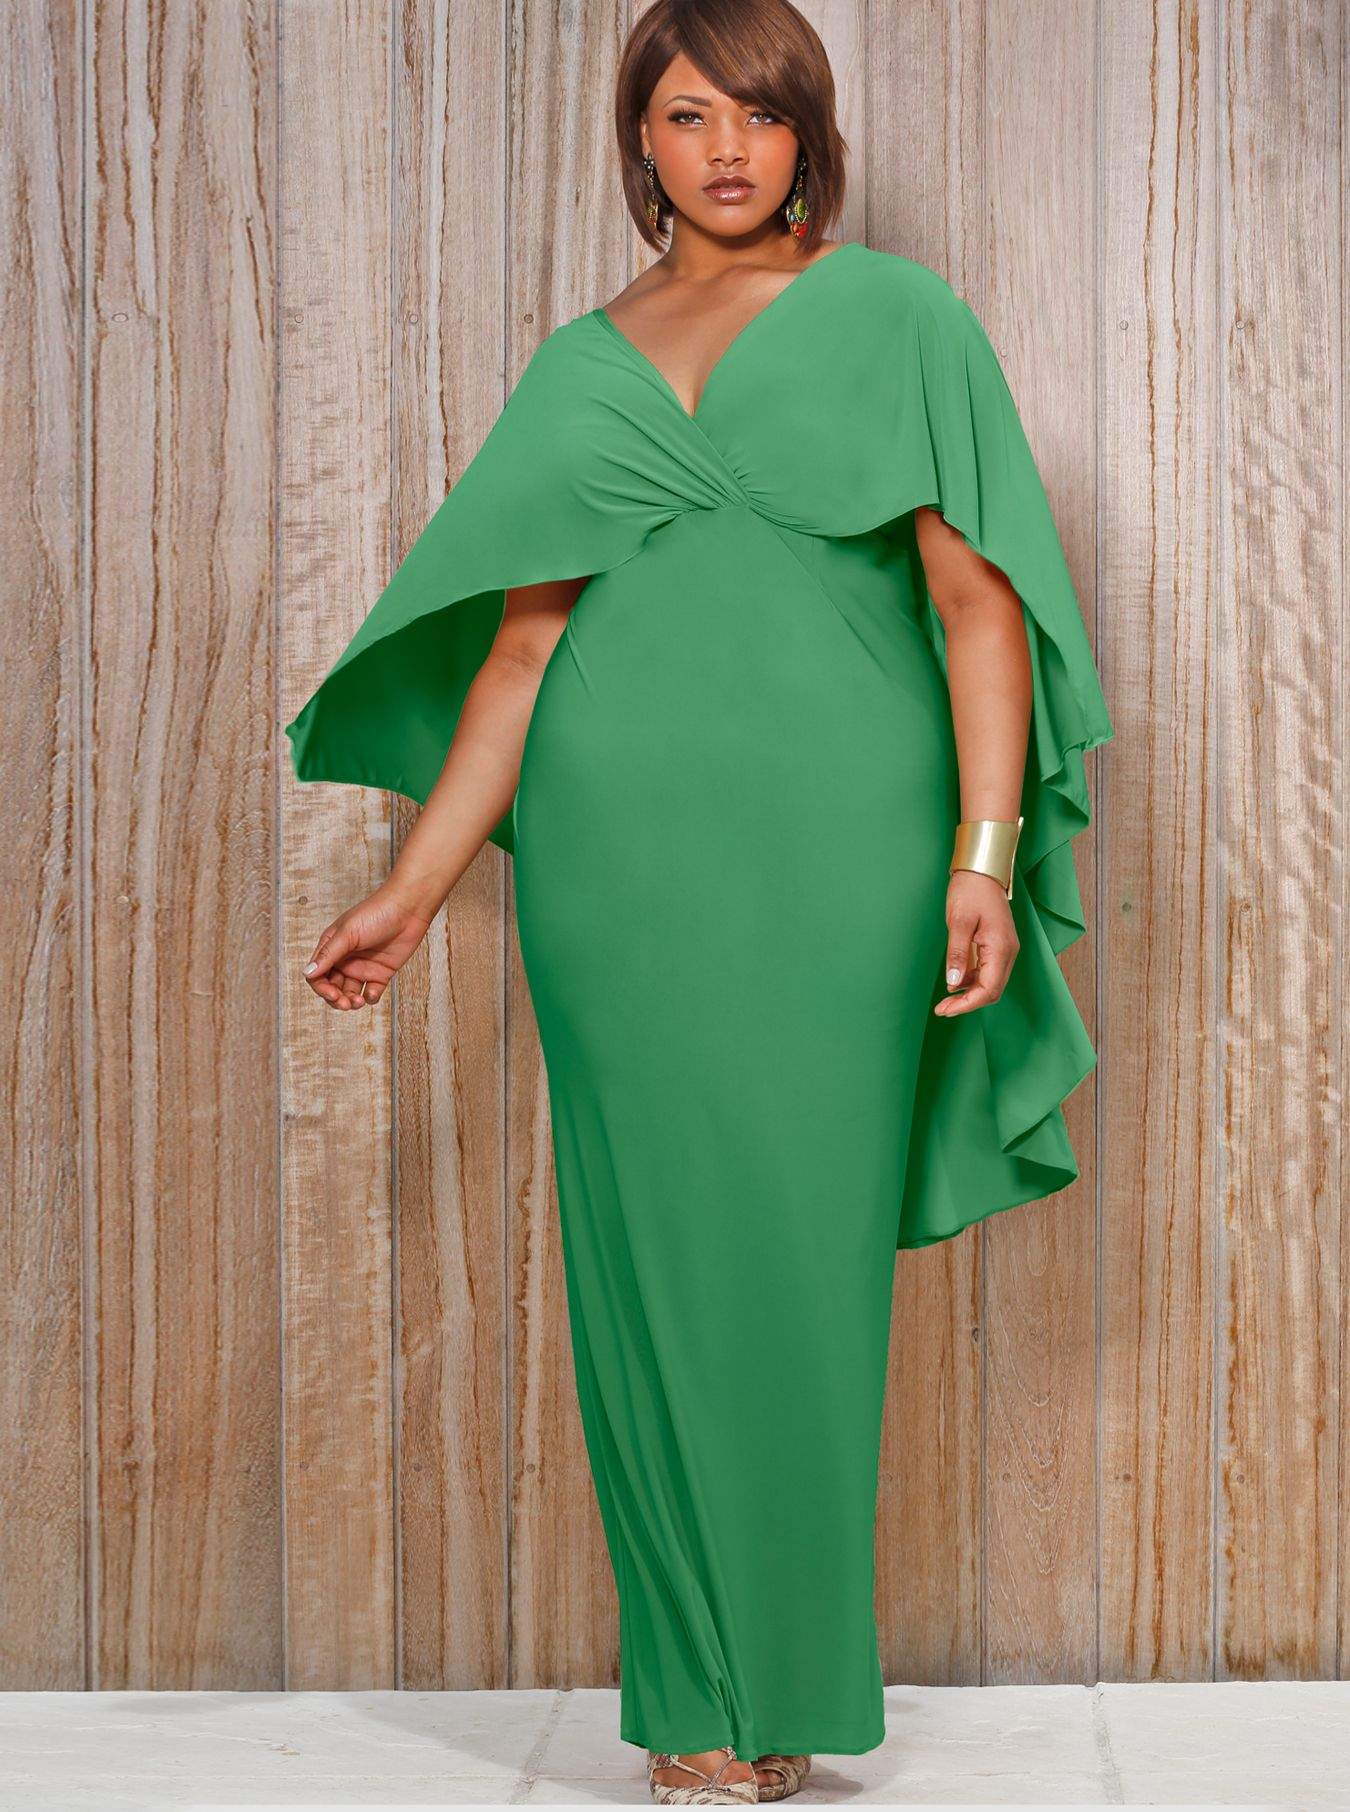 plus size green dresses for wedding